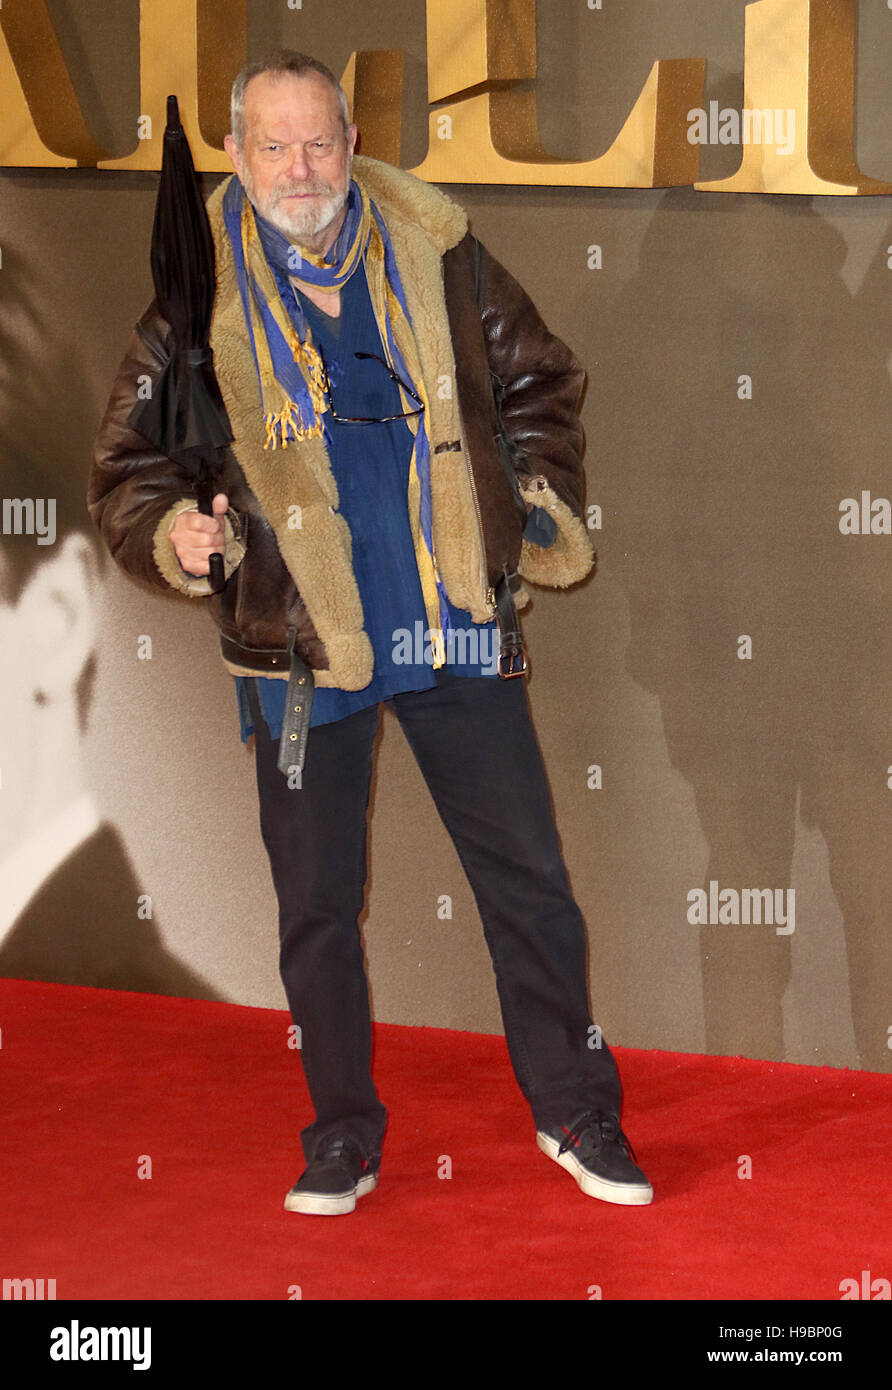 London, UK. 21st Nov, 2016. Terry Gilliam attending Allied UK Premiere, Odeon Leicester Square in London, UK Credit: - Stock Image